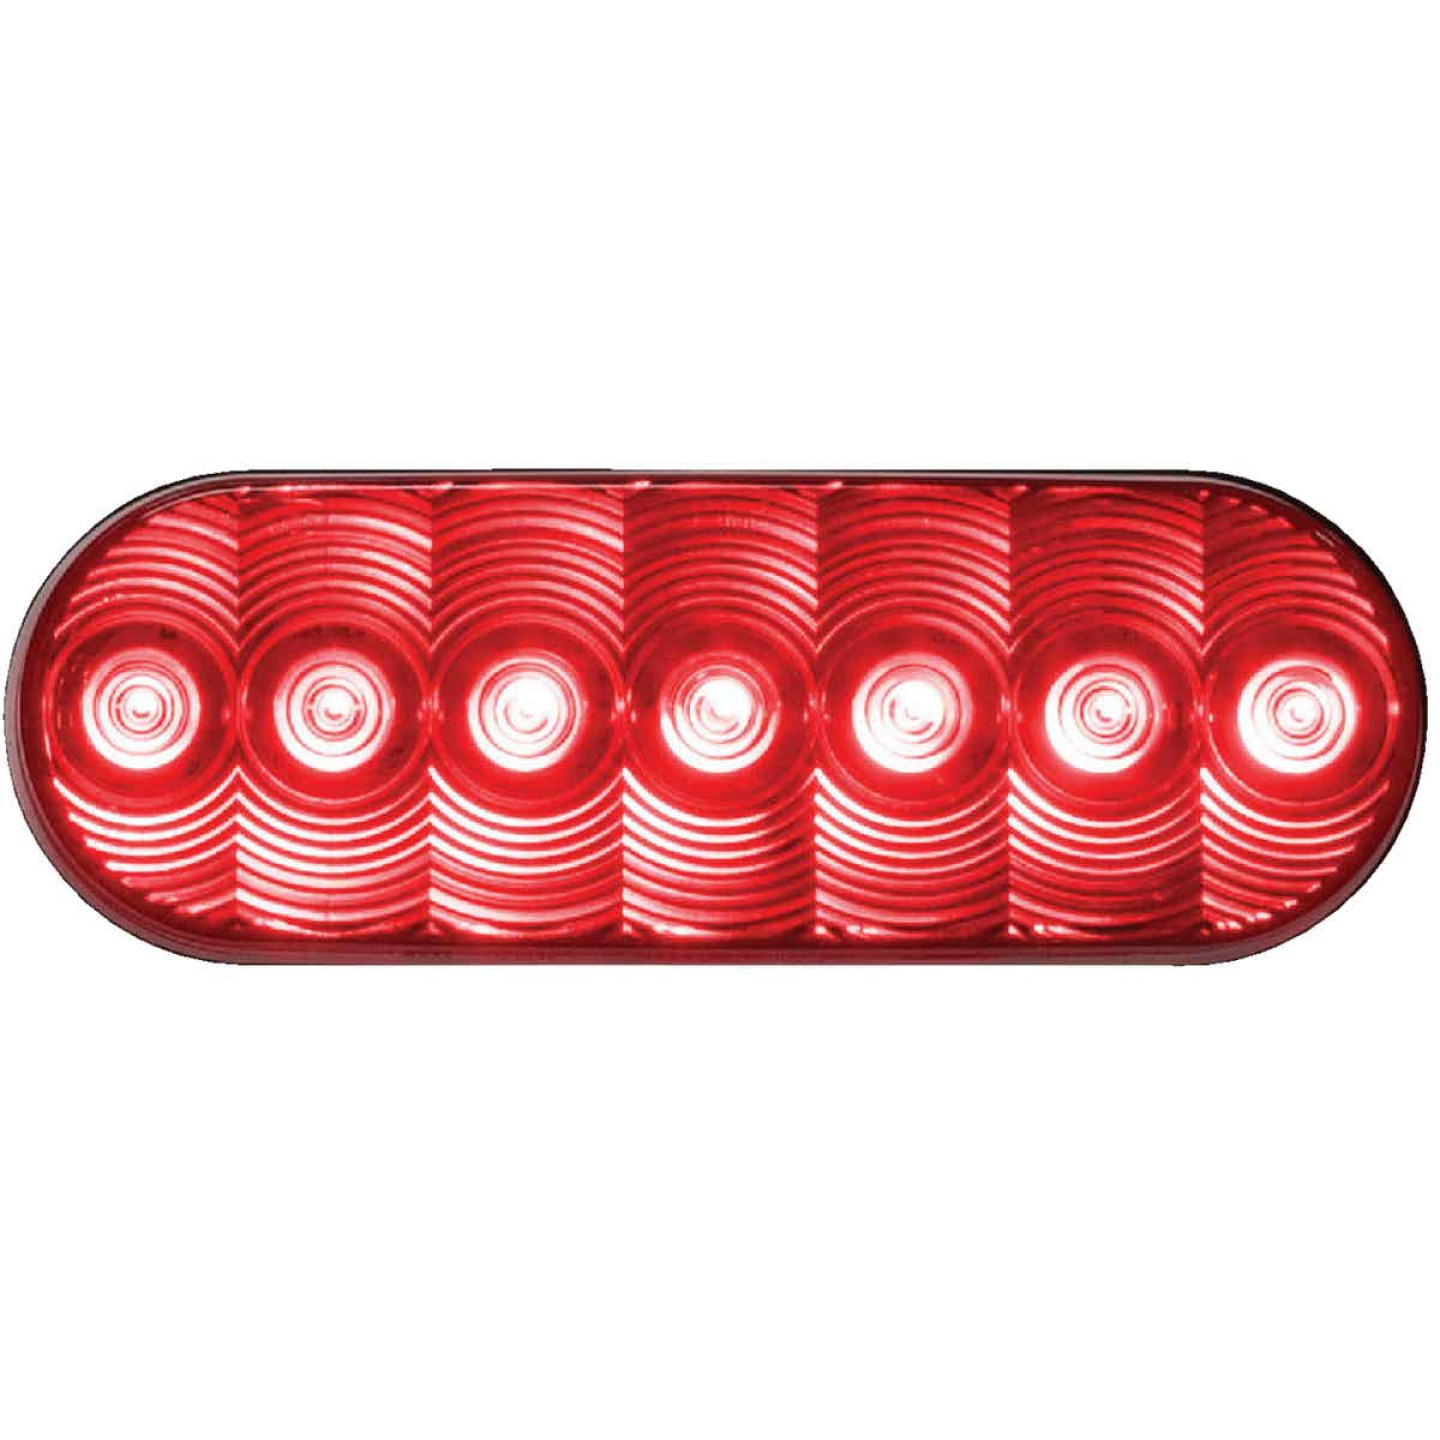 Peterson LumenX Oval 9-16 V. Red Stop & Tail Light Image 1